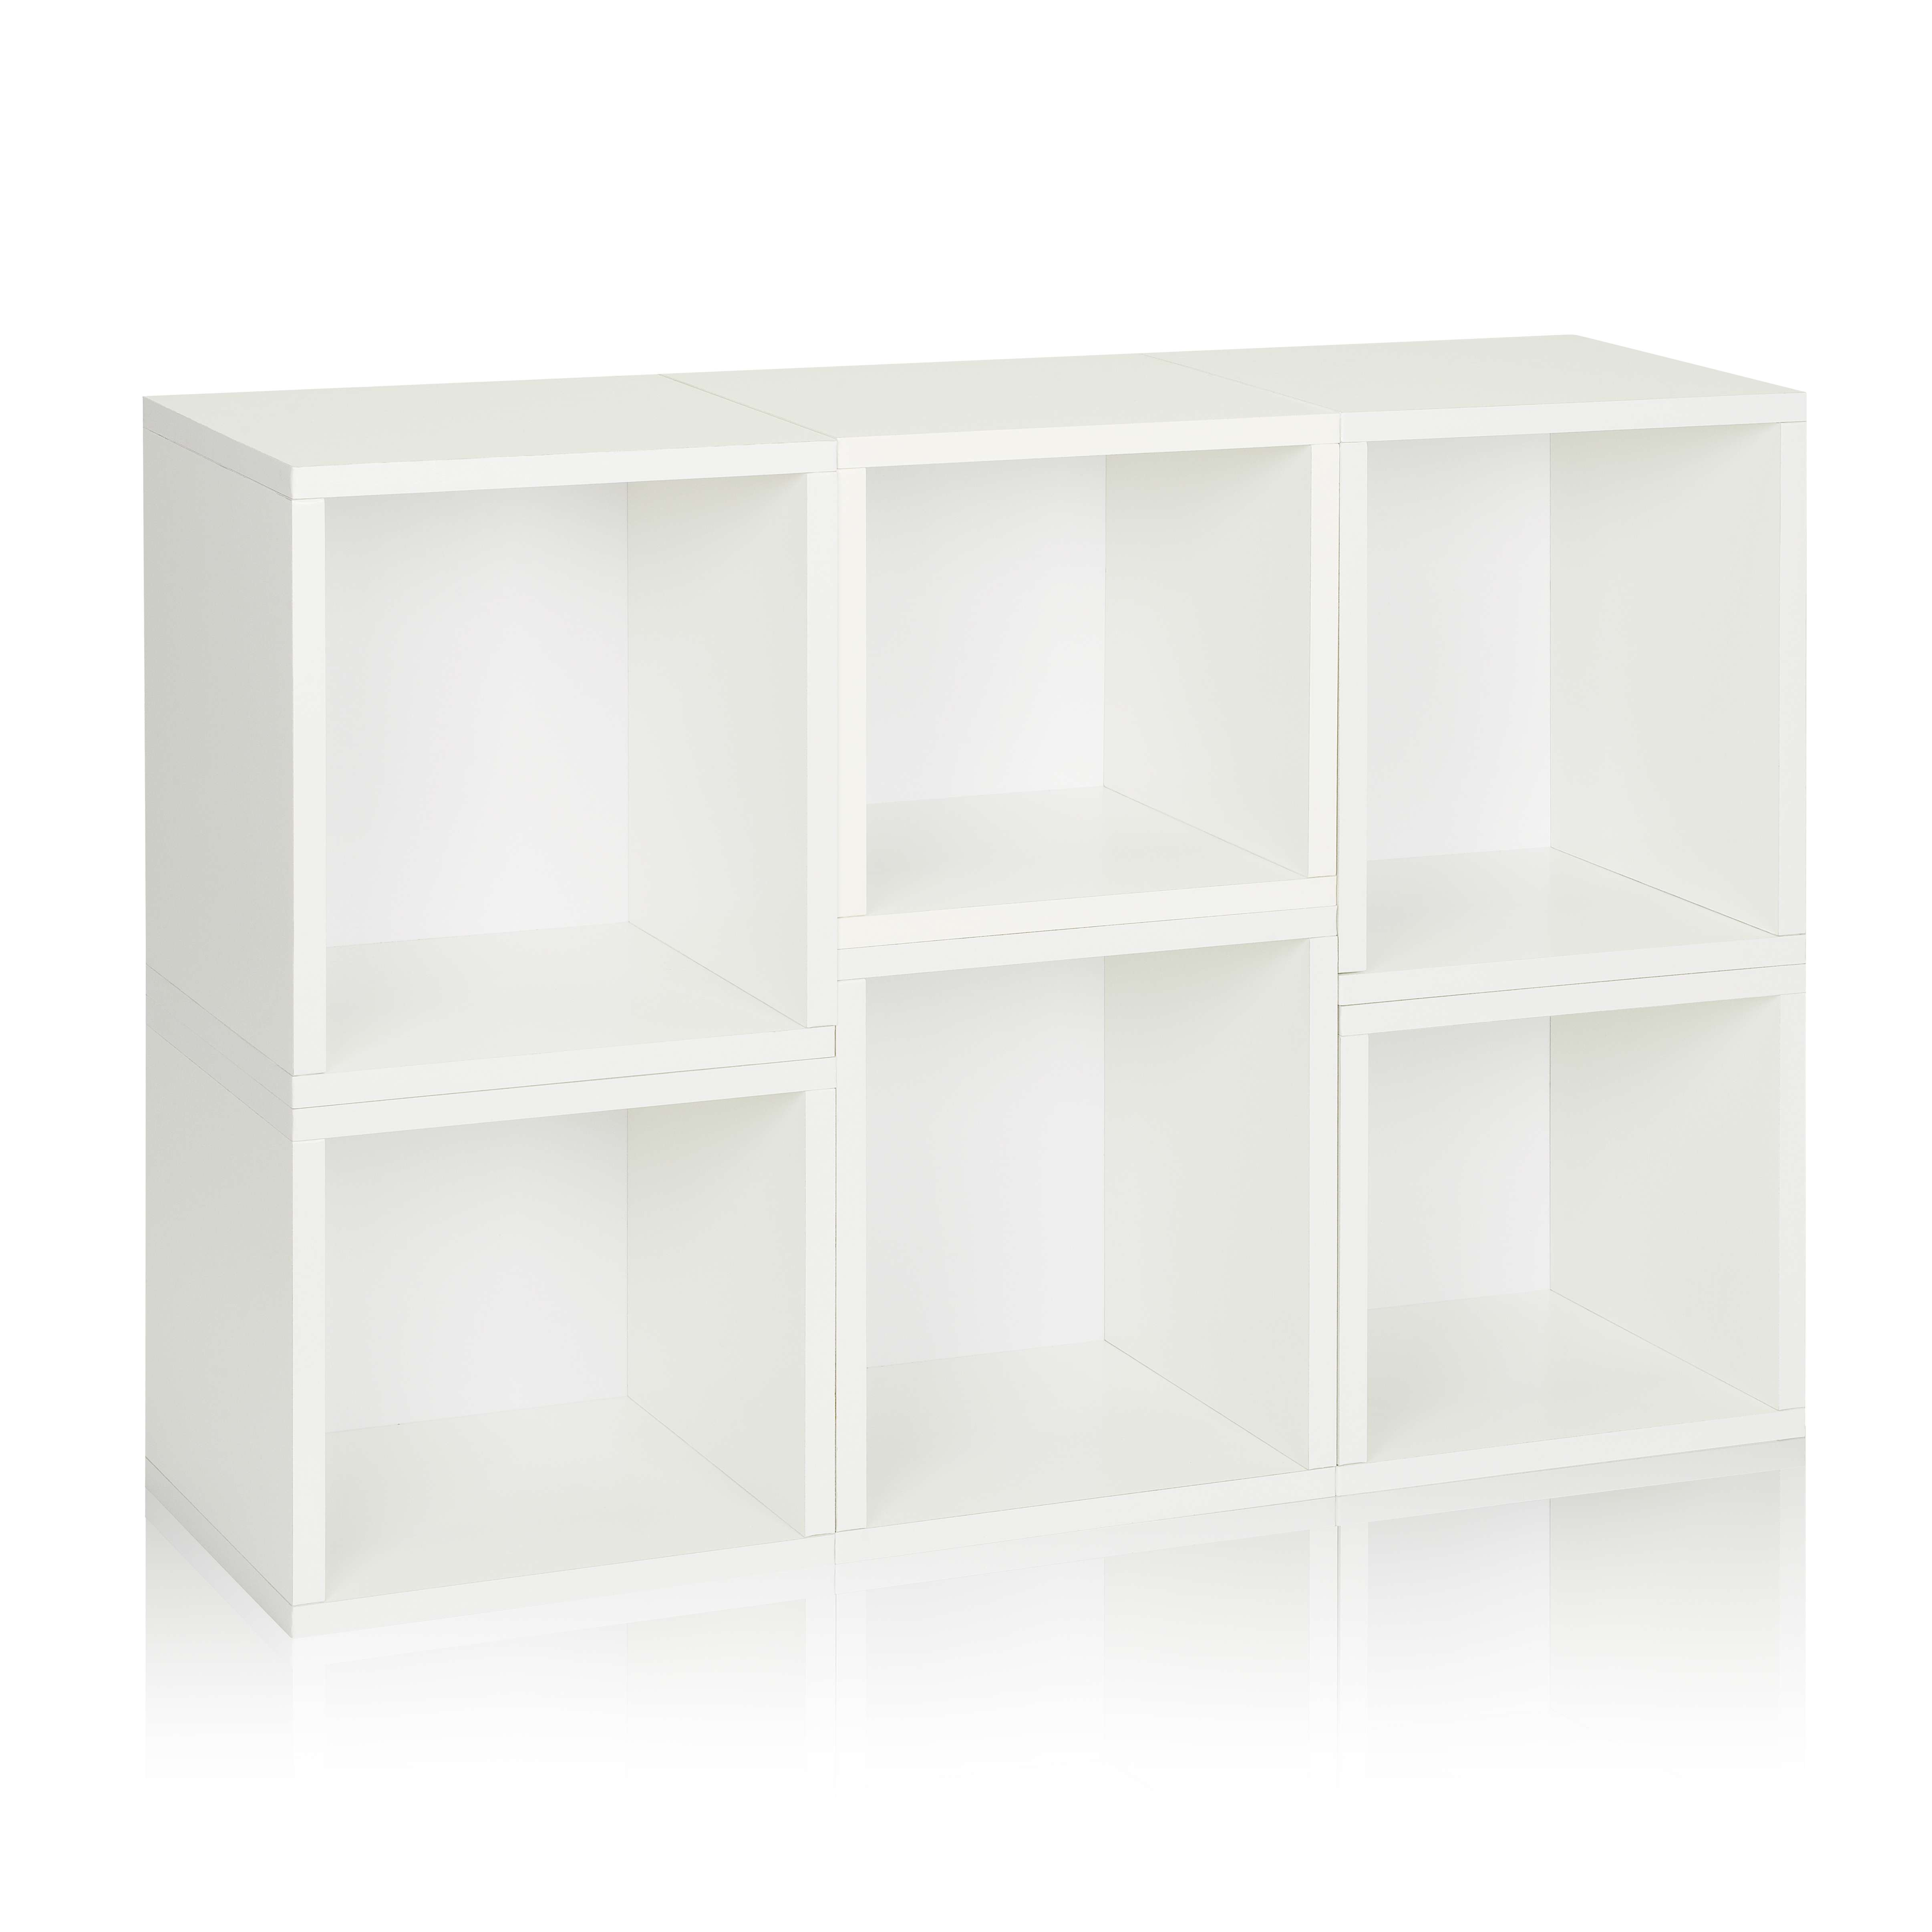 Eco Stackable Arlington Modular Bookcase And Storage Shelf In White